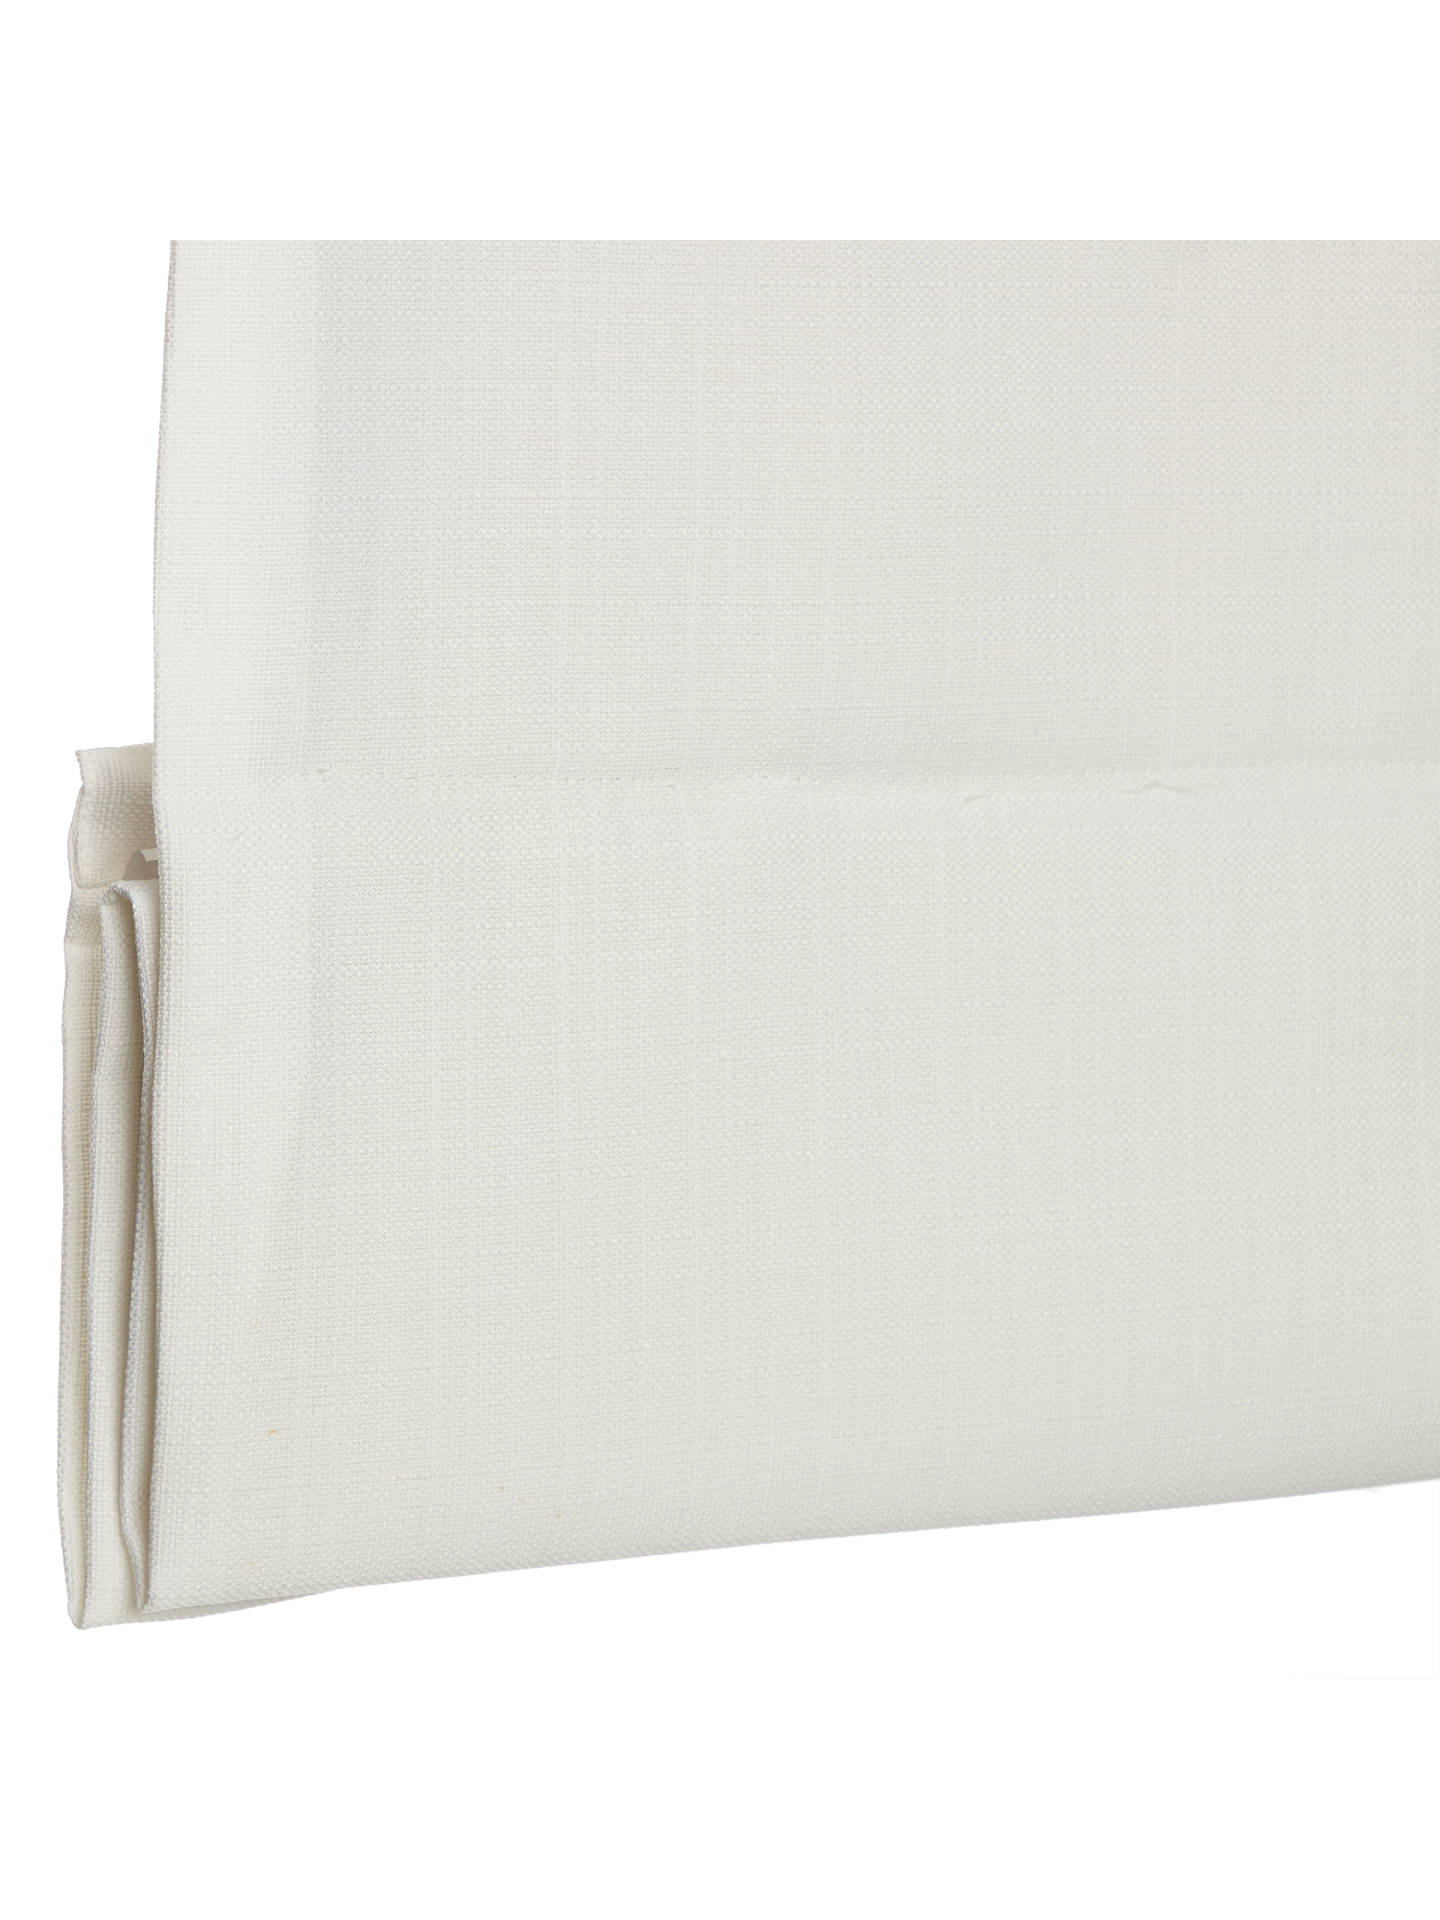 BuyCroft Collection Shawford Blackout Roman Blind, White, W60cm Online at johnlewis.com